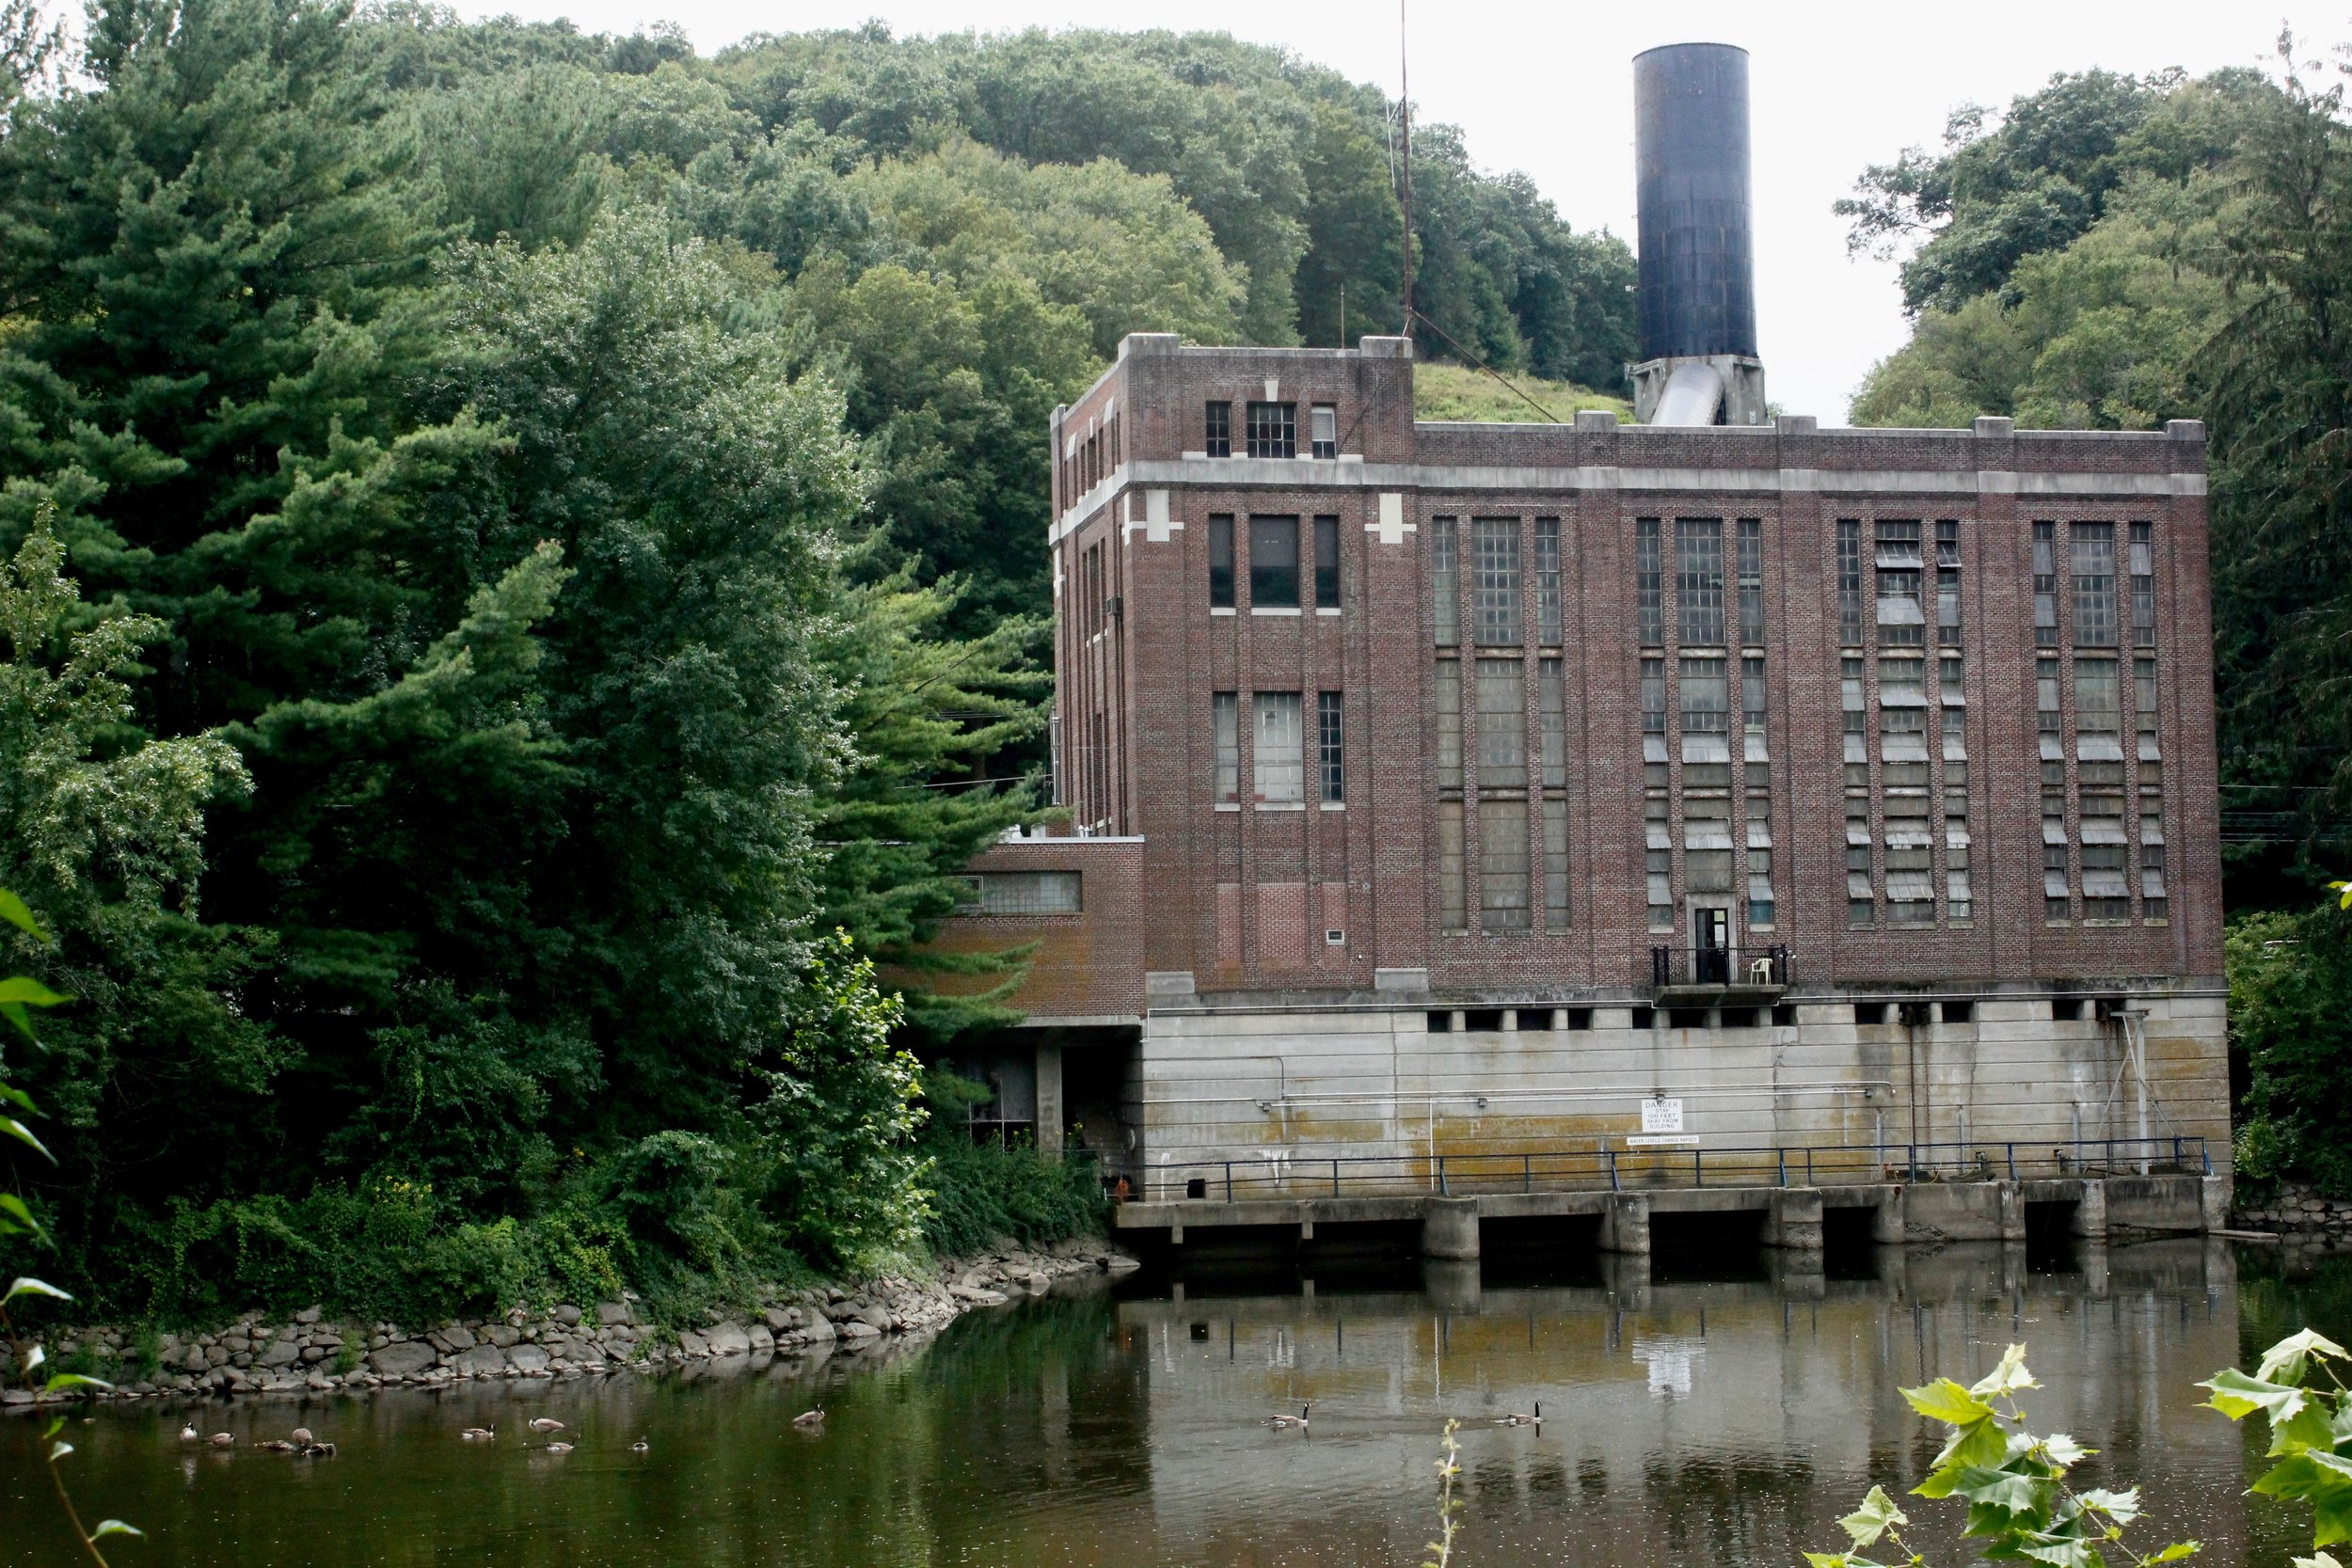 This is the back side of the power plant, and the Housatonic River below.  Once the water flows through the pipe, into the power plant, where its momentum is used to spin turbines that create electricity, the  now slow moving water is discharged into the river. The water gets pumped back up to the lake when there is low power demand and electricity is cheap, typically at night.